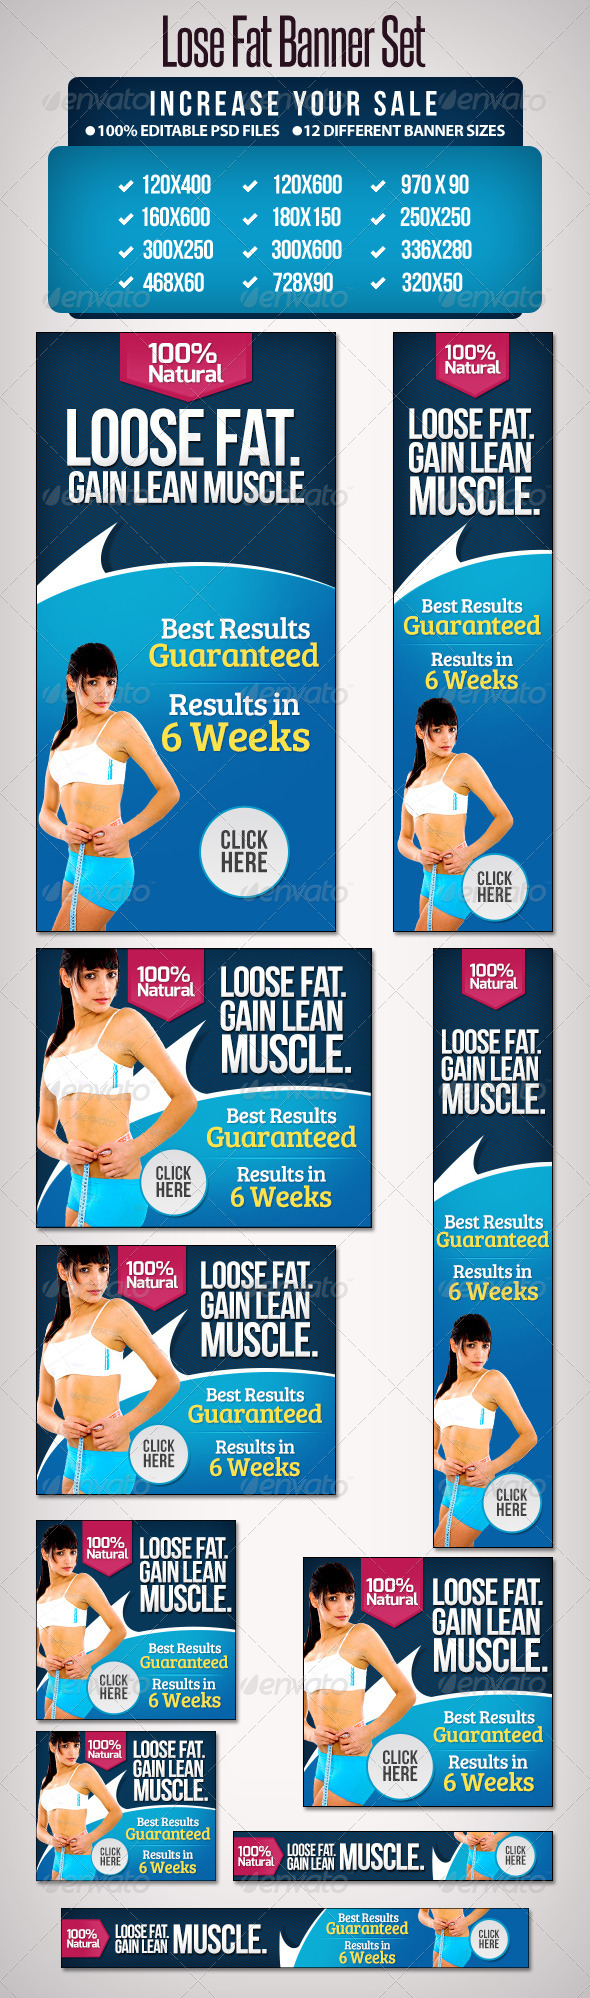 GraphicRiver Lose Fat Banner Set Google Pack 12 Sizes 5164420